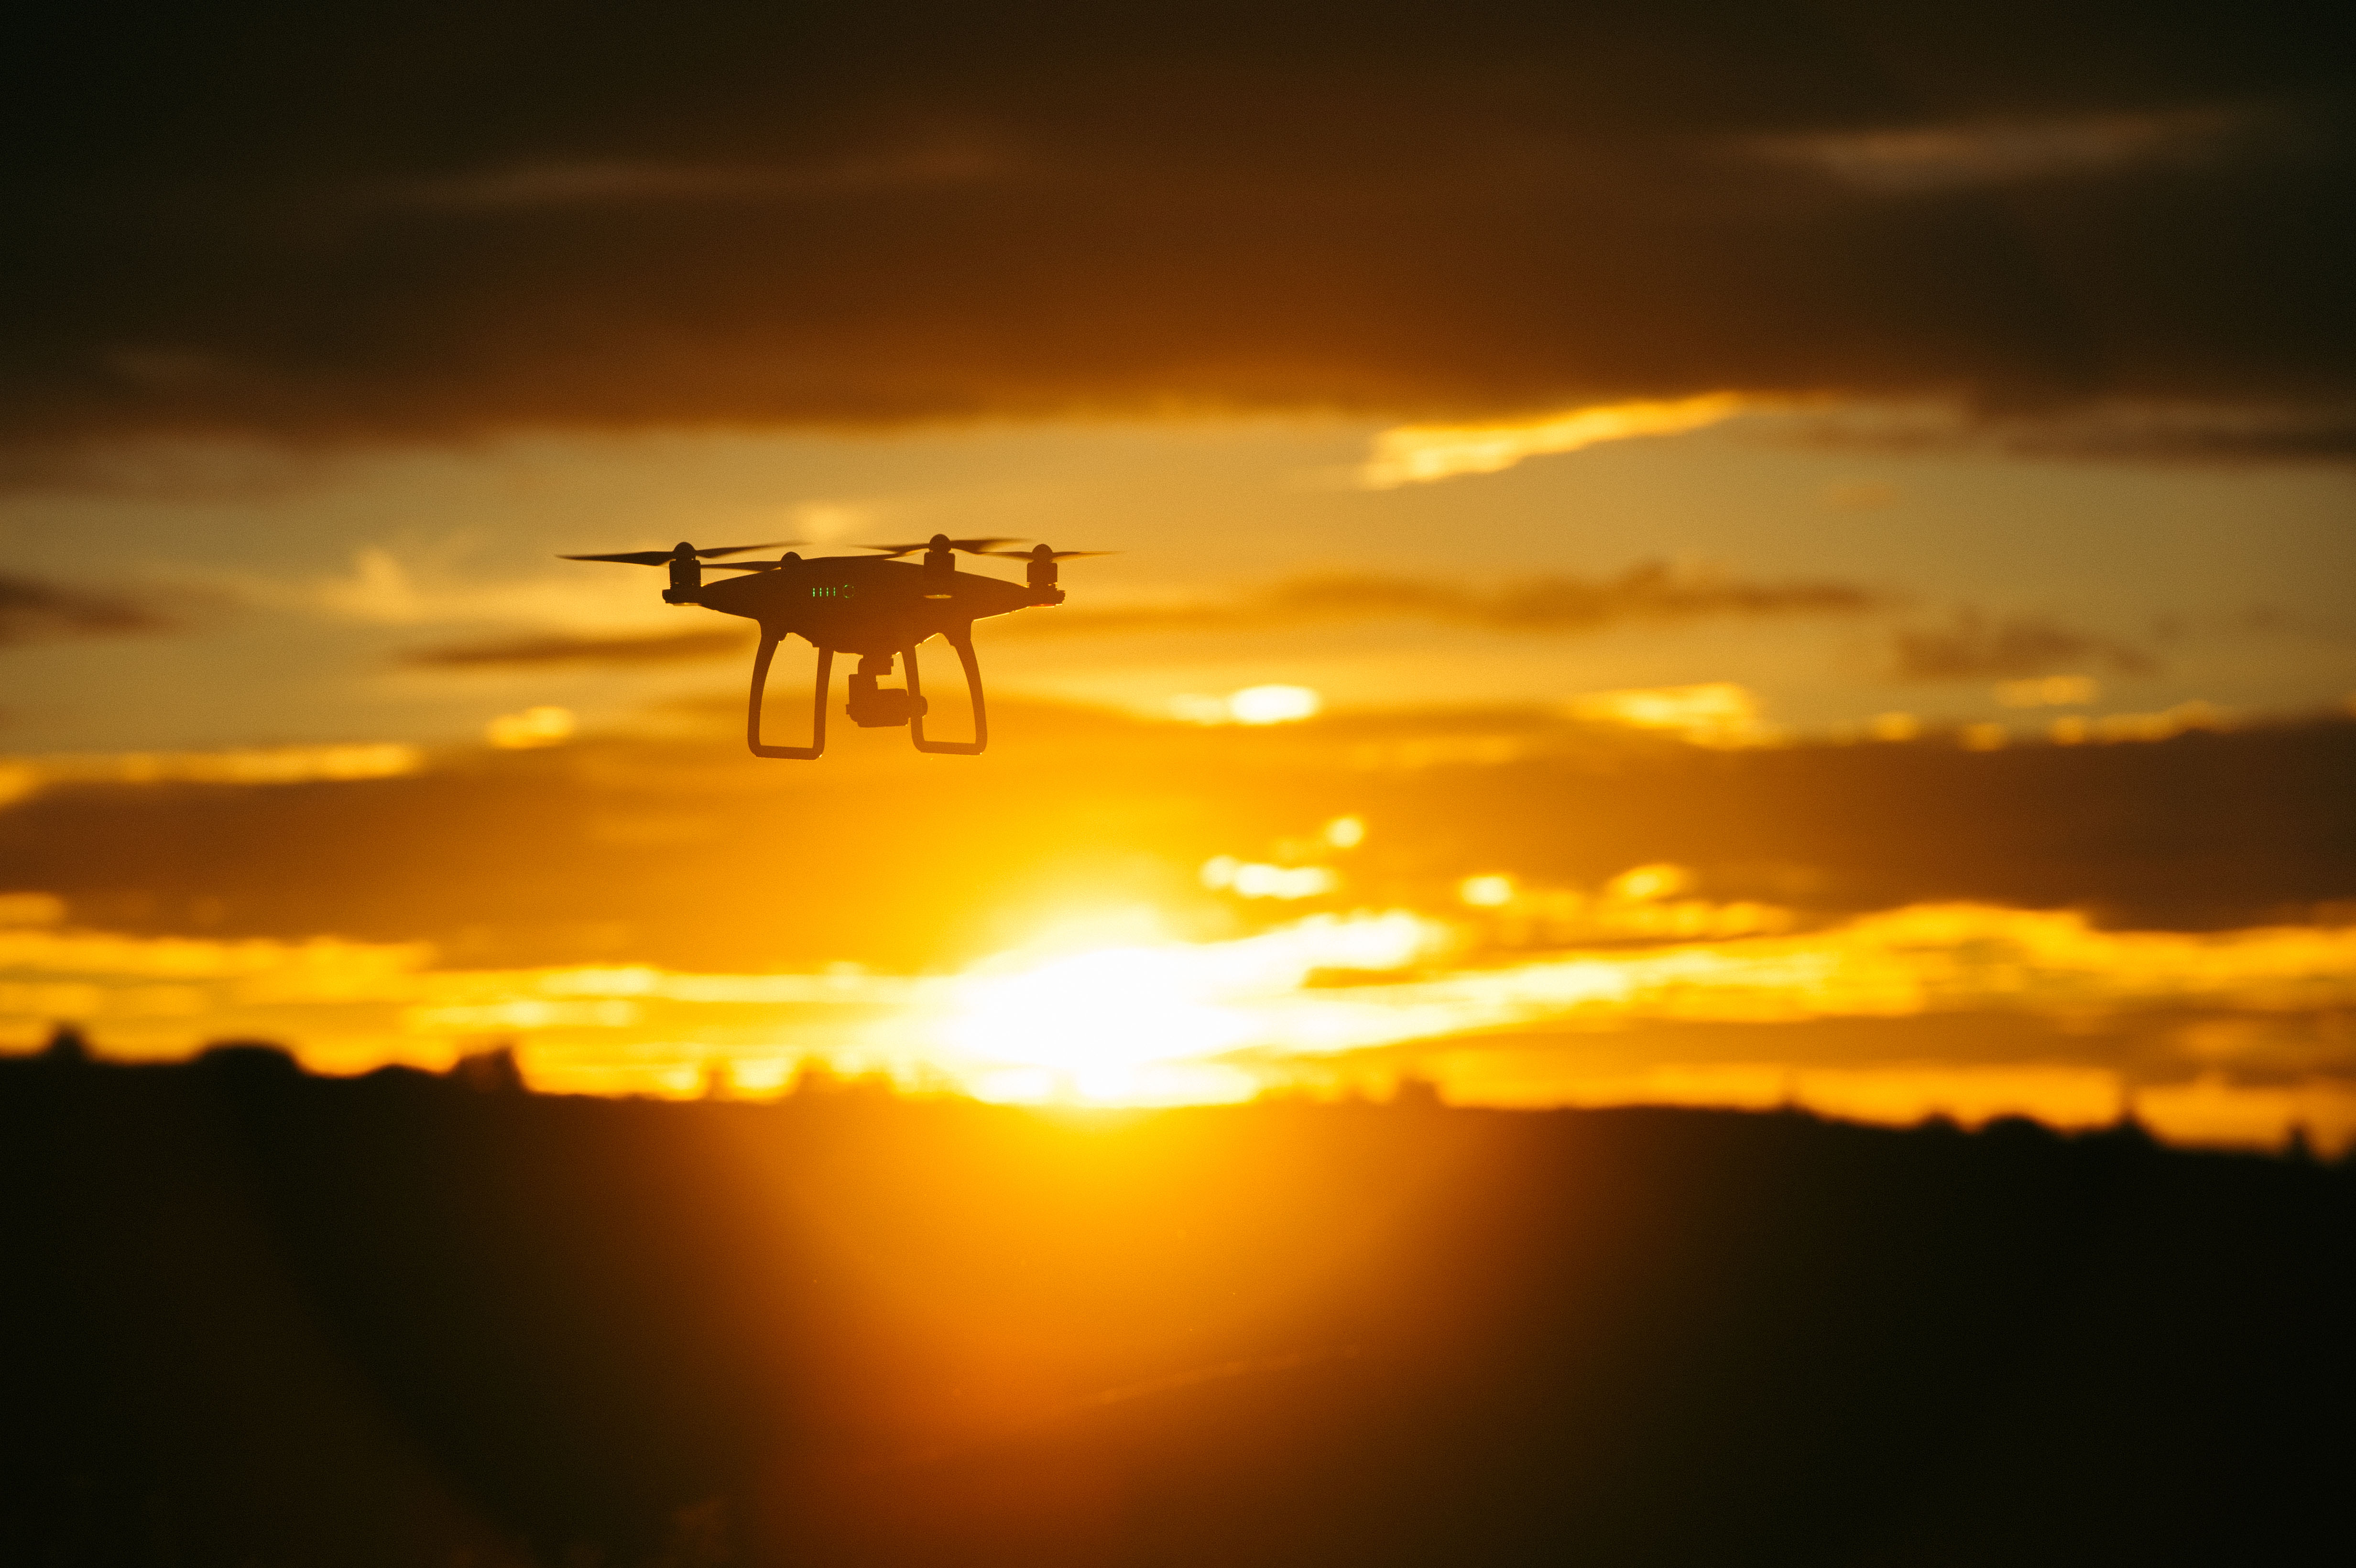 Download free Drone HD pictures